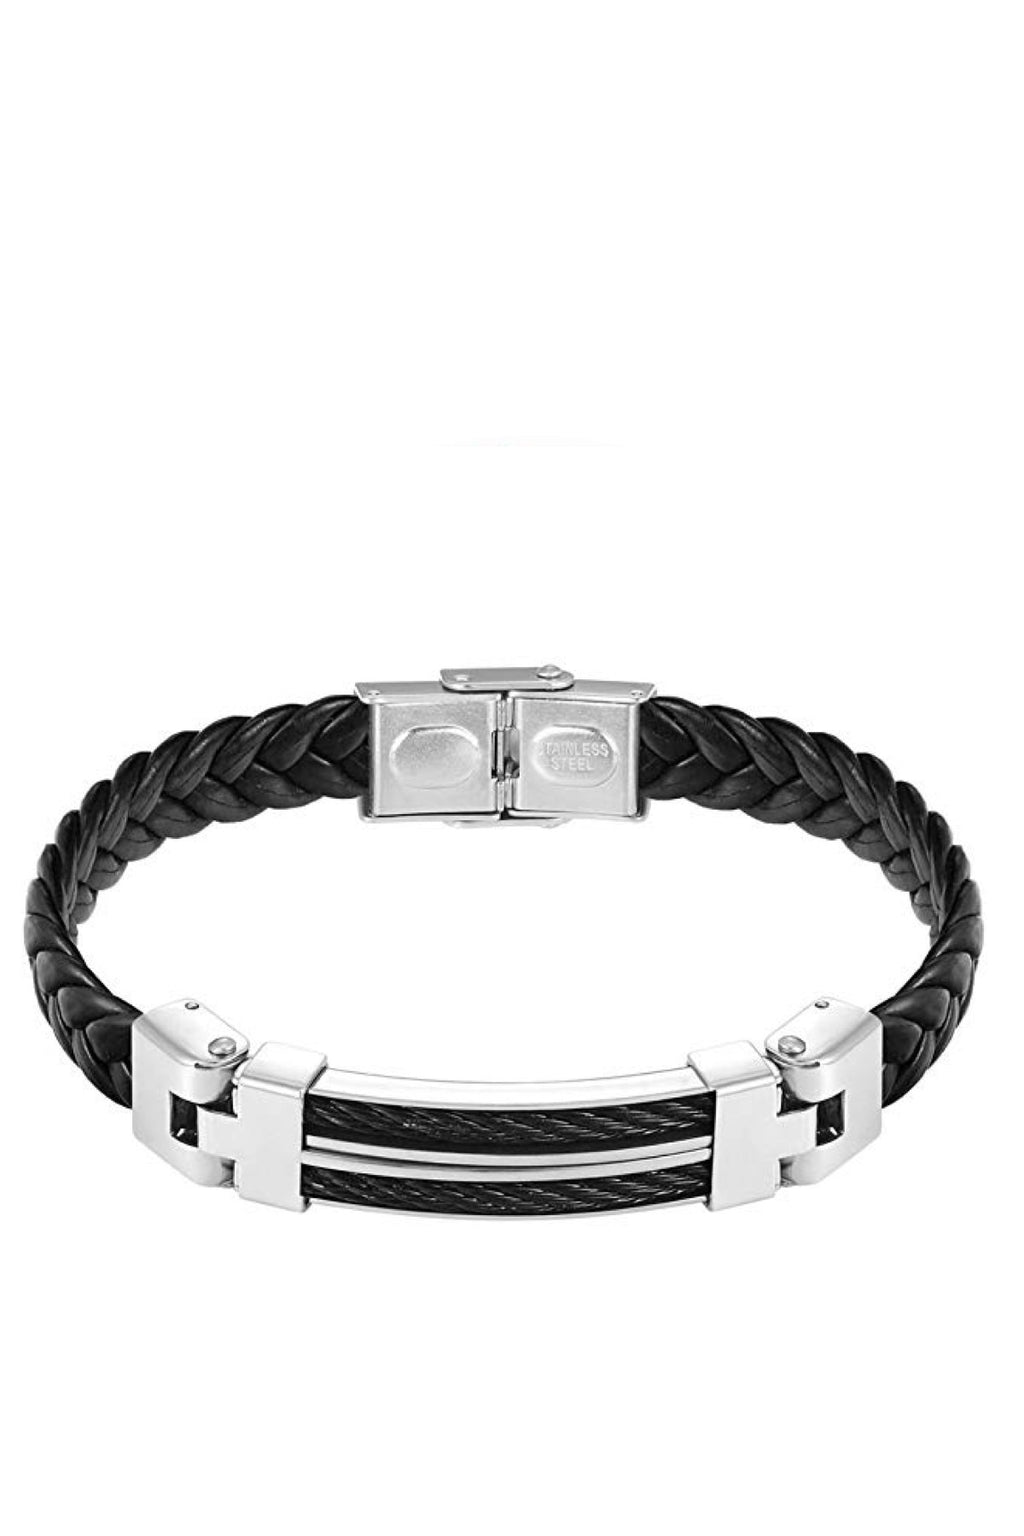 Silver Black Leather Two Tone Bracelet